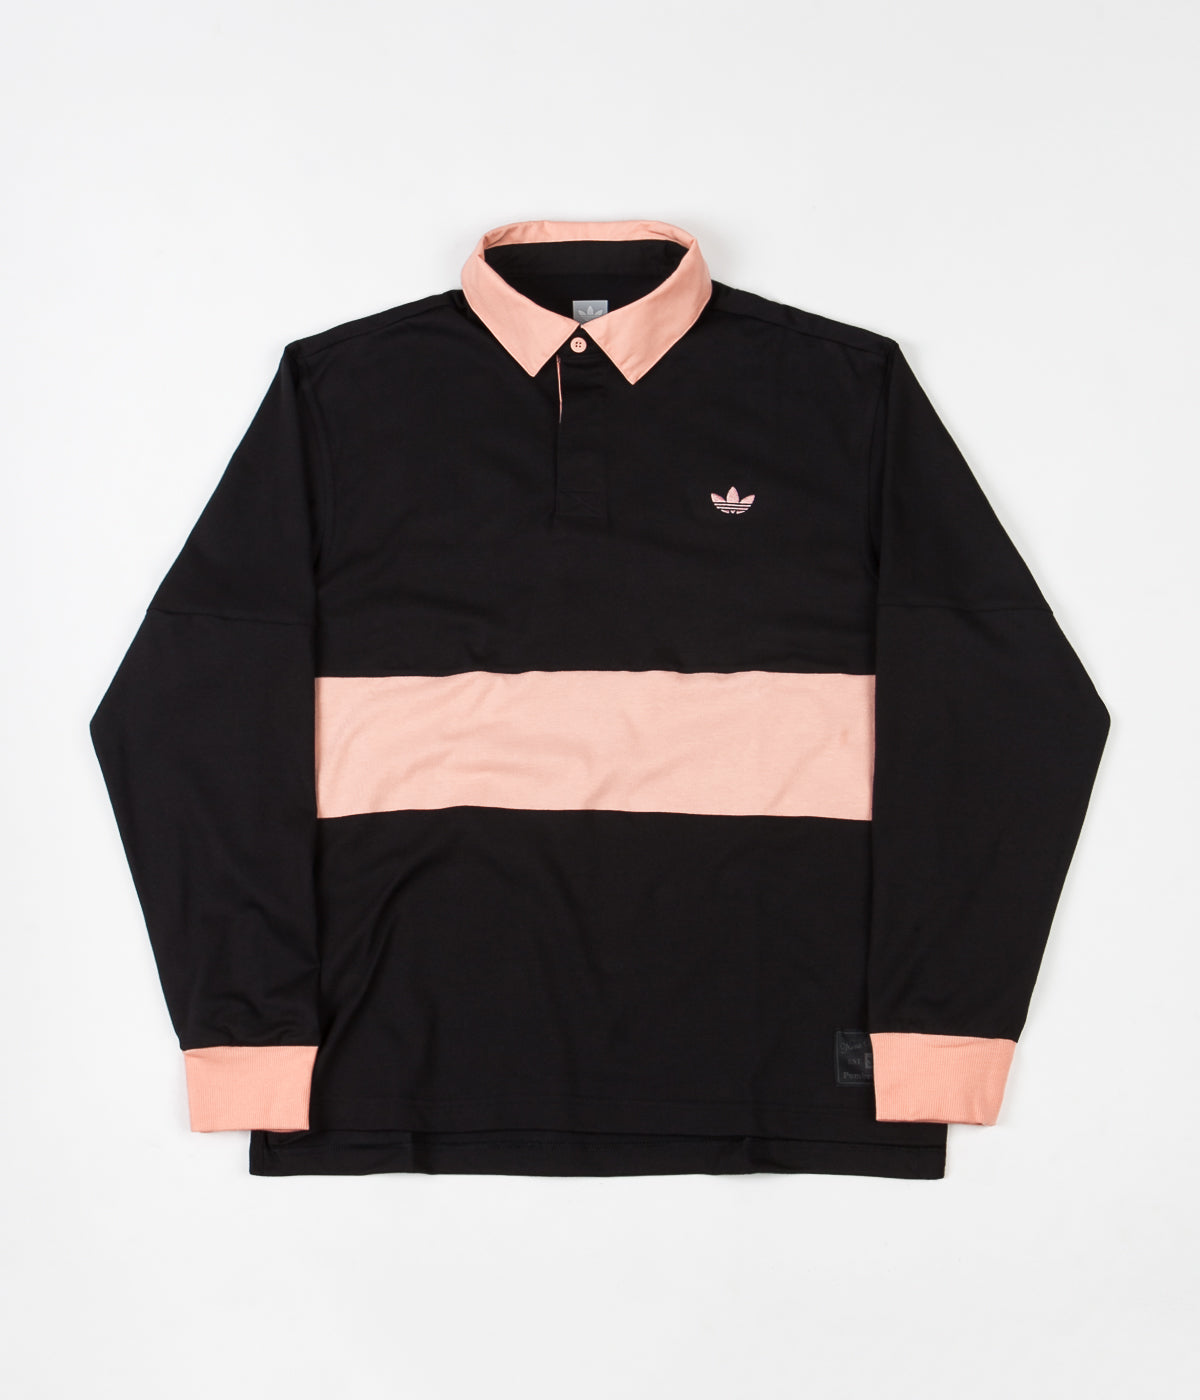 Adidas 'Nora' Long Sleeve Polo Shirt - Black / Glow Pink